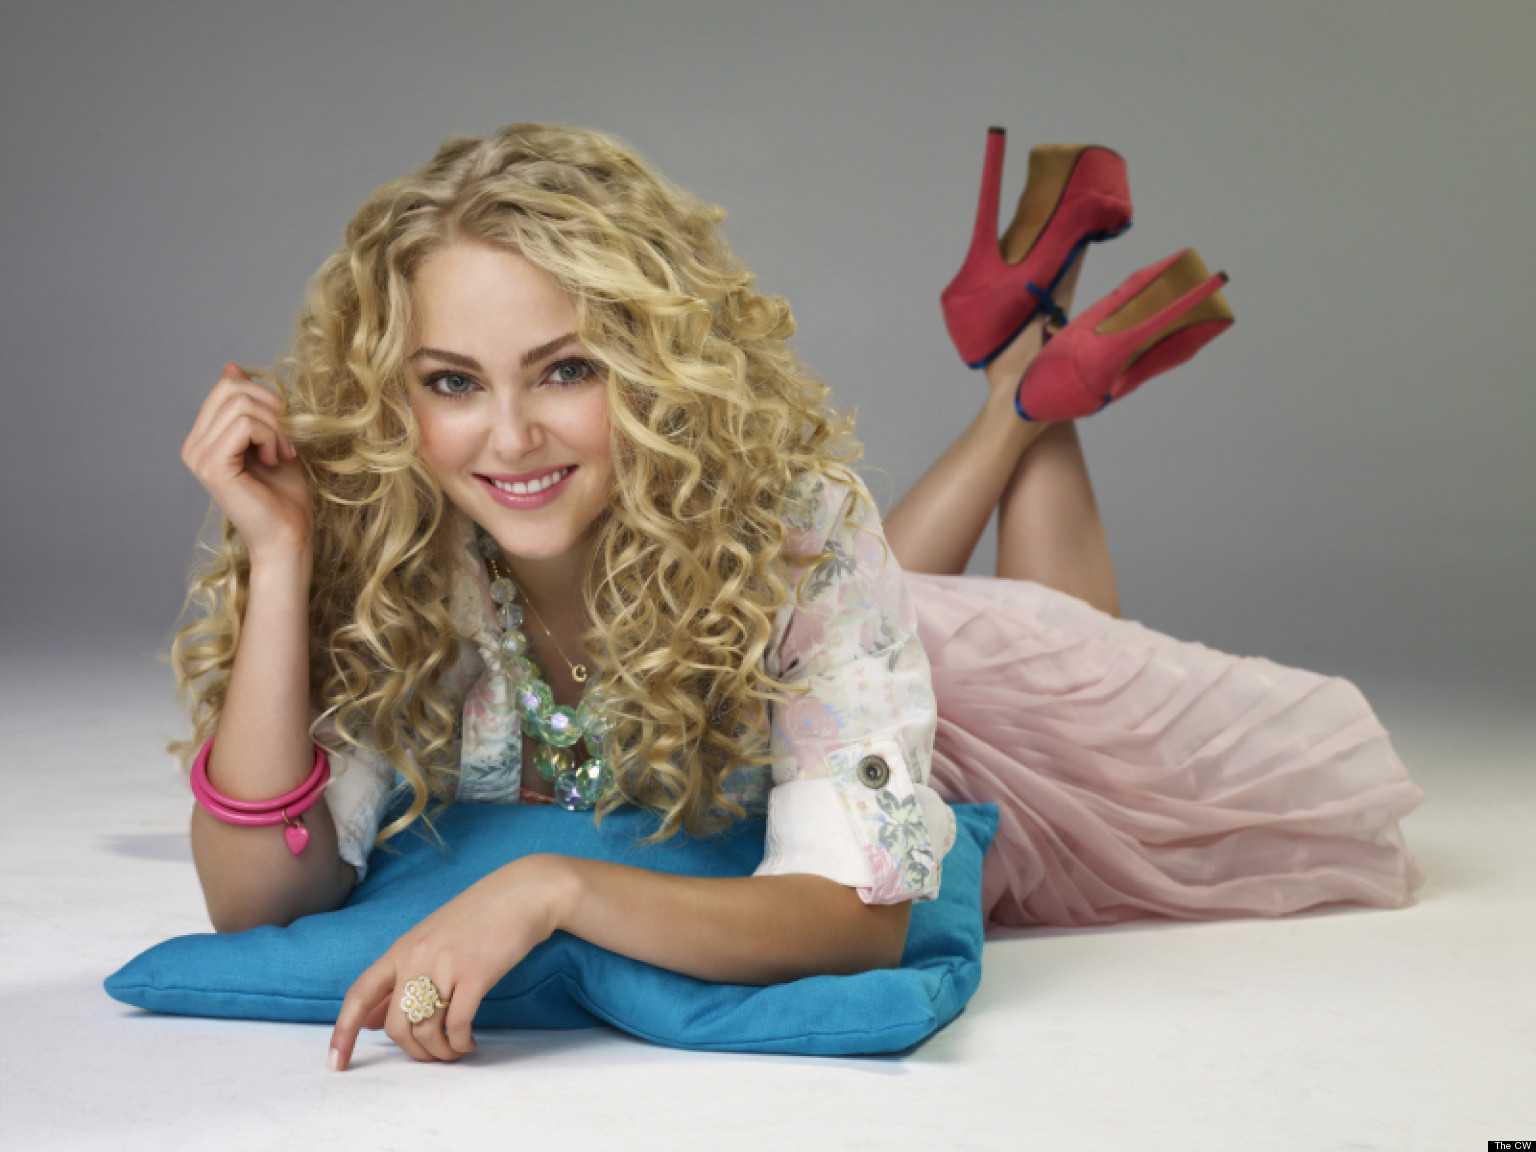 The Carrie Diaries Recap; Meet Samantha Jones